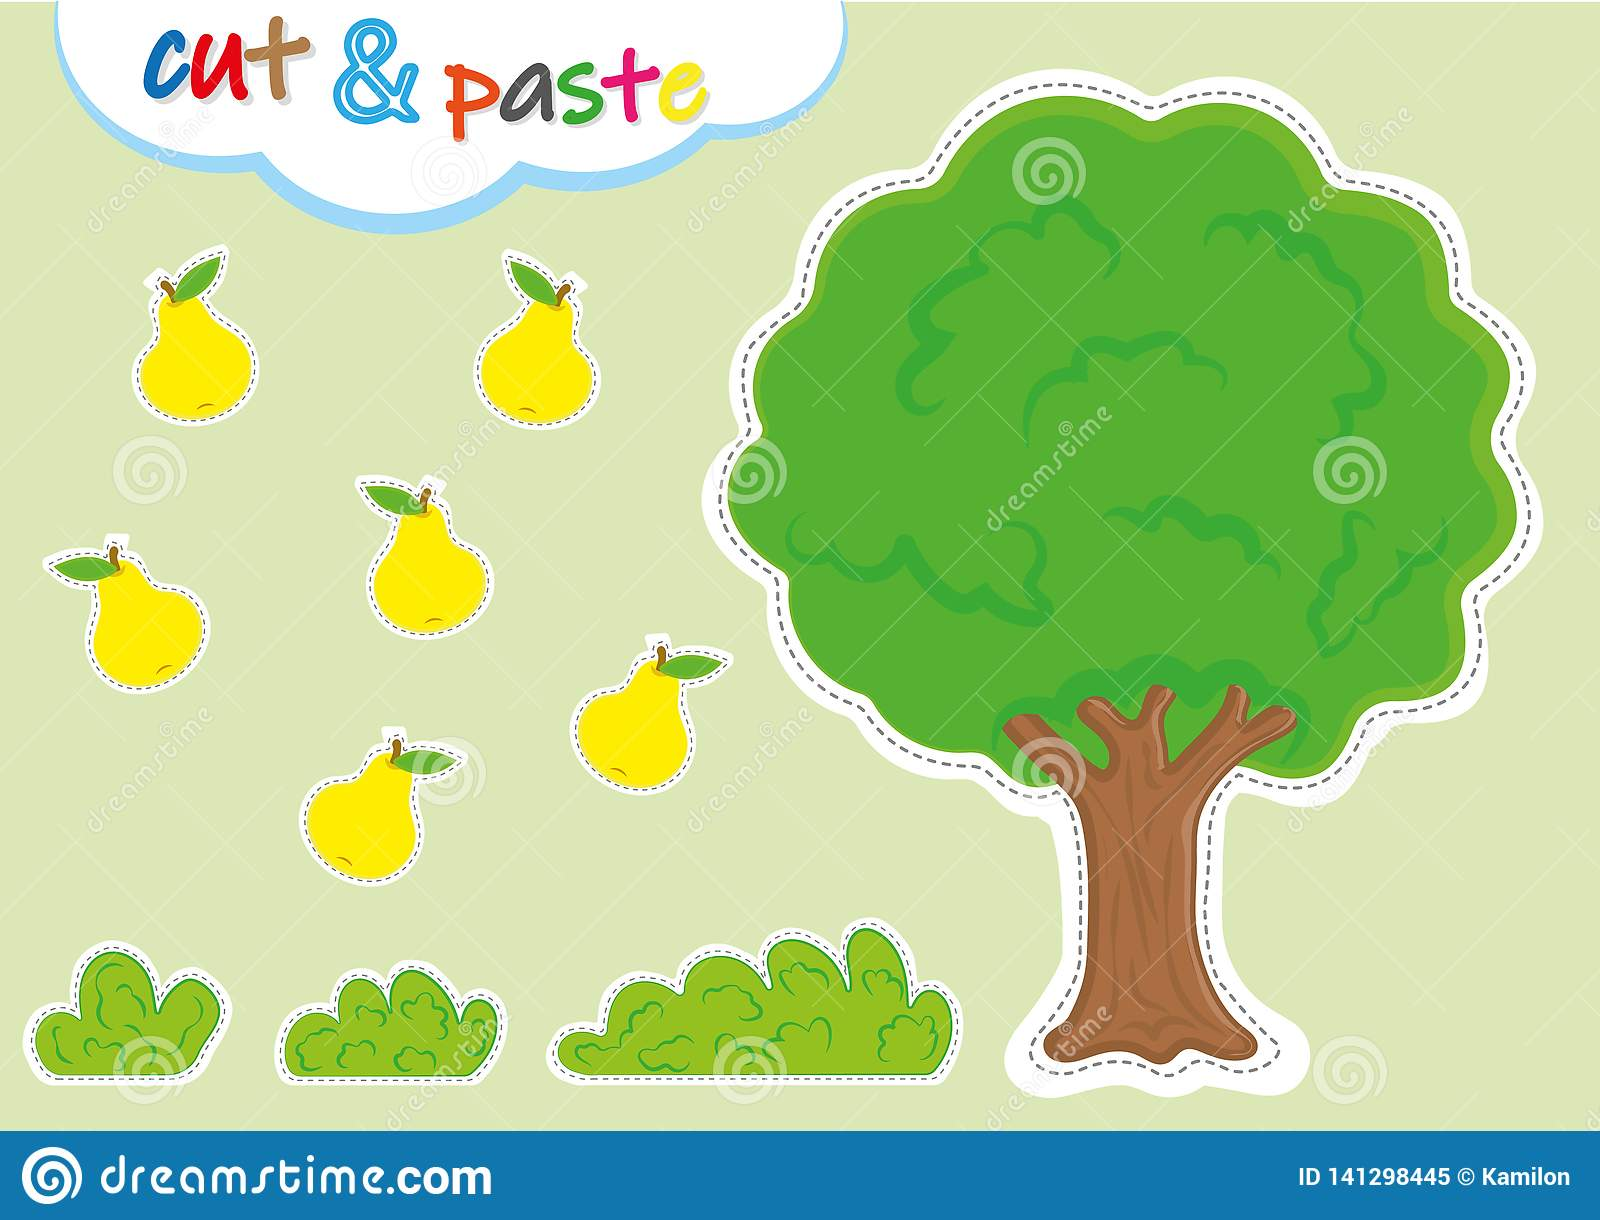 Cut And Paste Activities For Kindergarten, Preschool Cutting ...